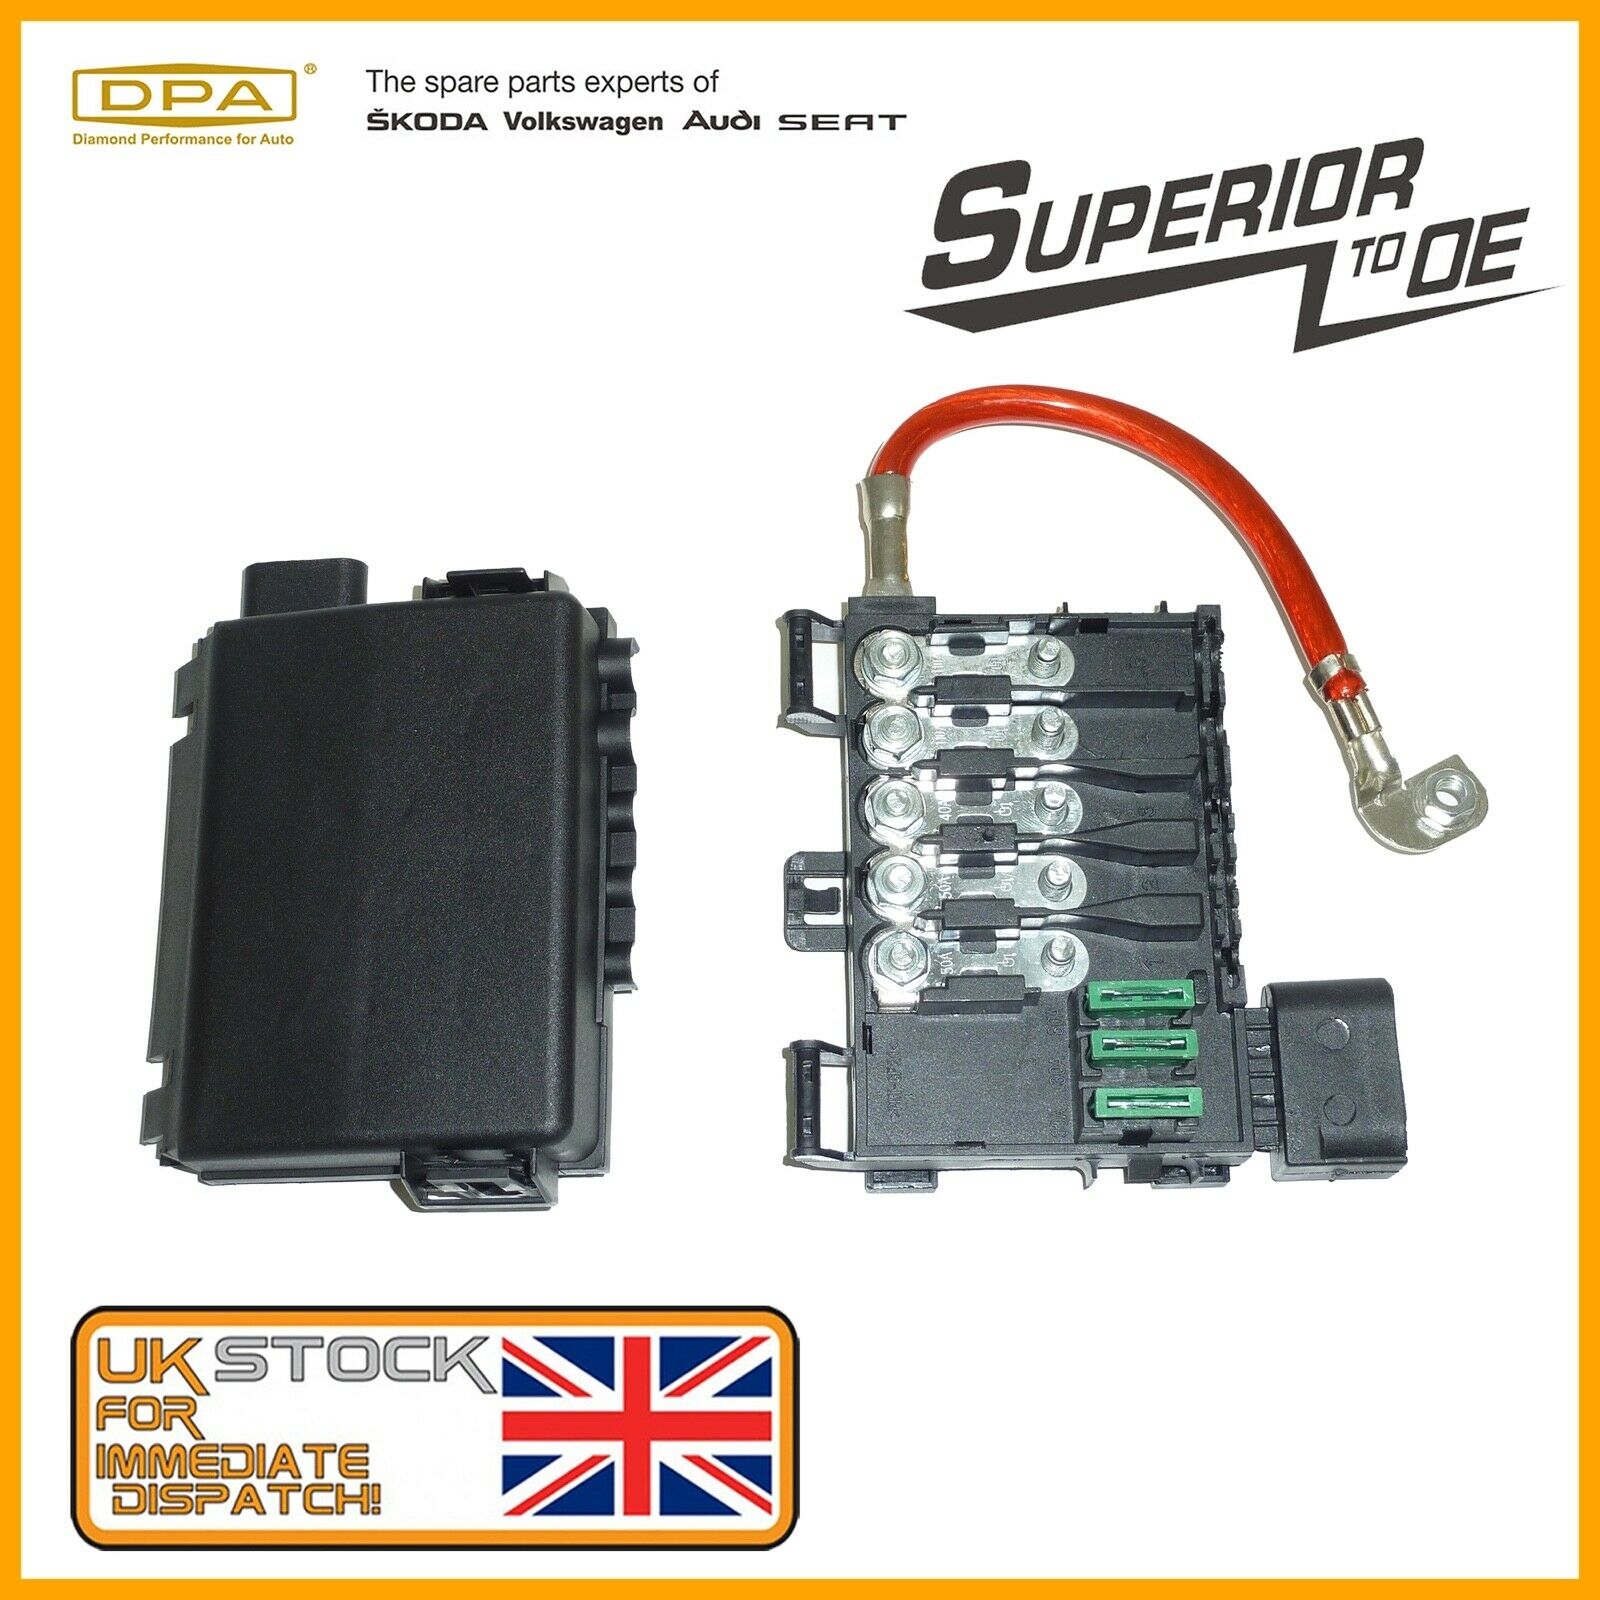 Vw Caddy Golf Audi A3 Seat Skoda Octavia 70ah Battery Fuse Box 1 Holder 1j0937617a Of 4only 3 Available See More